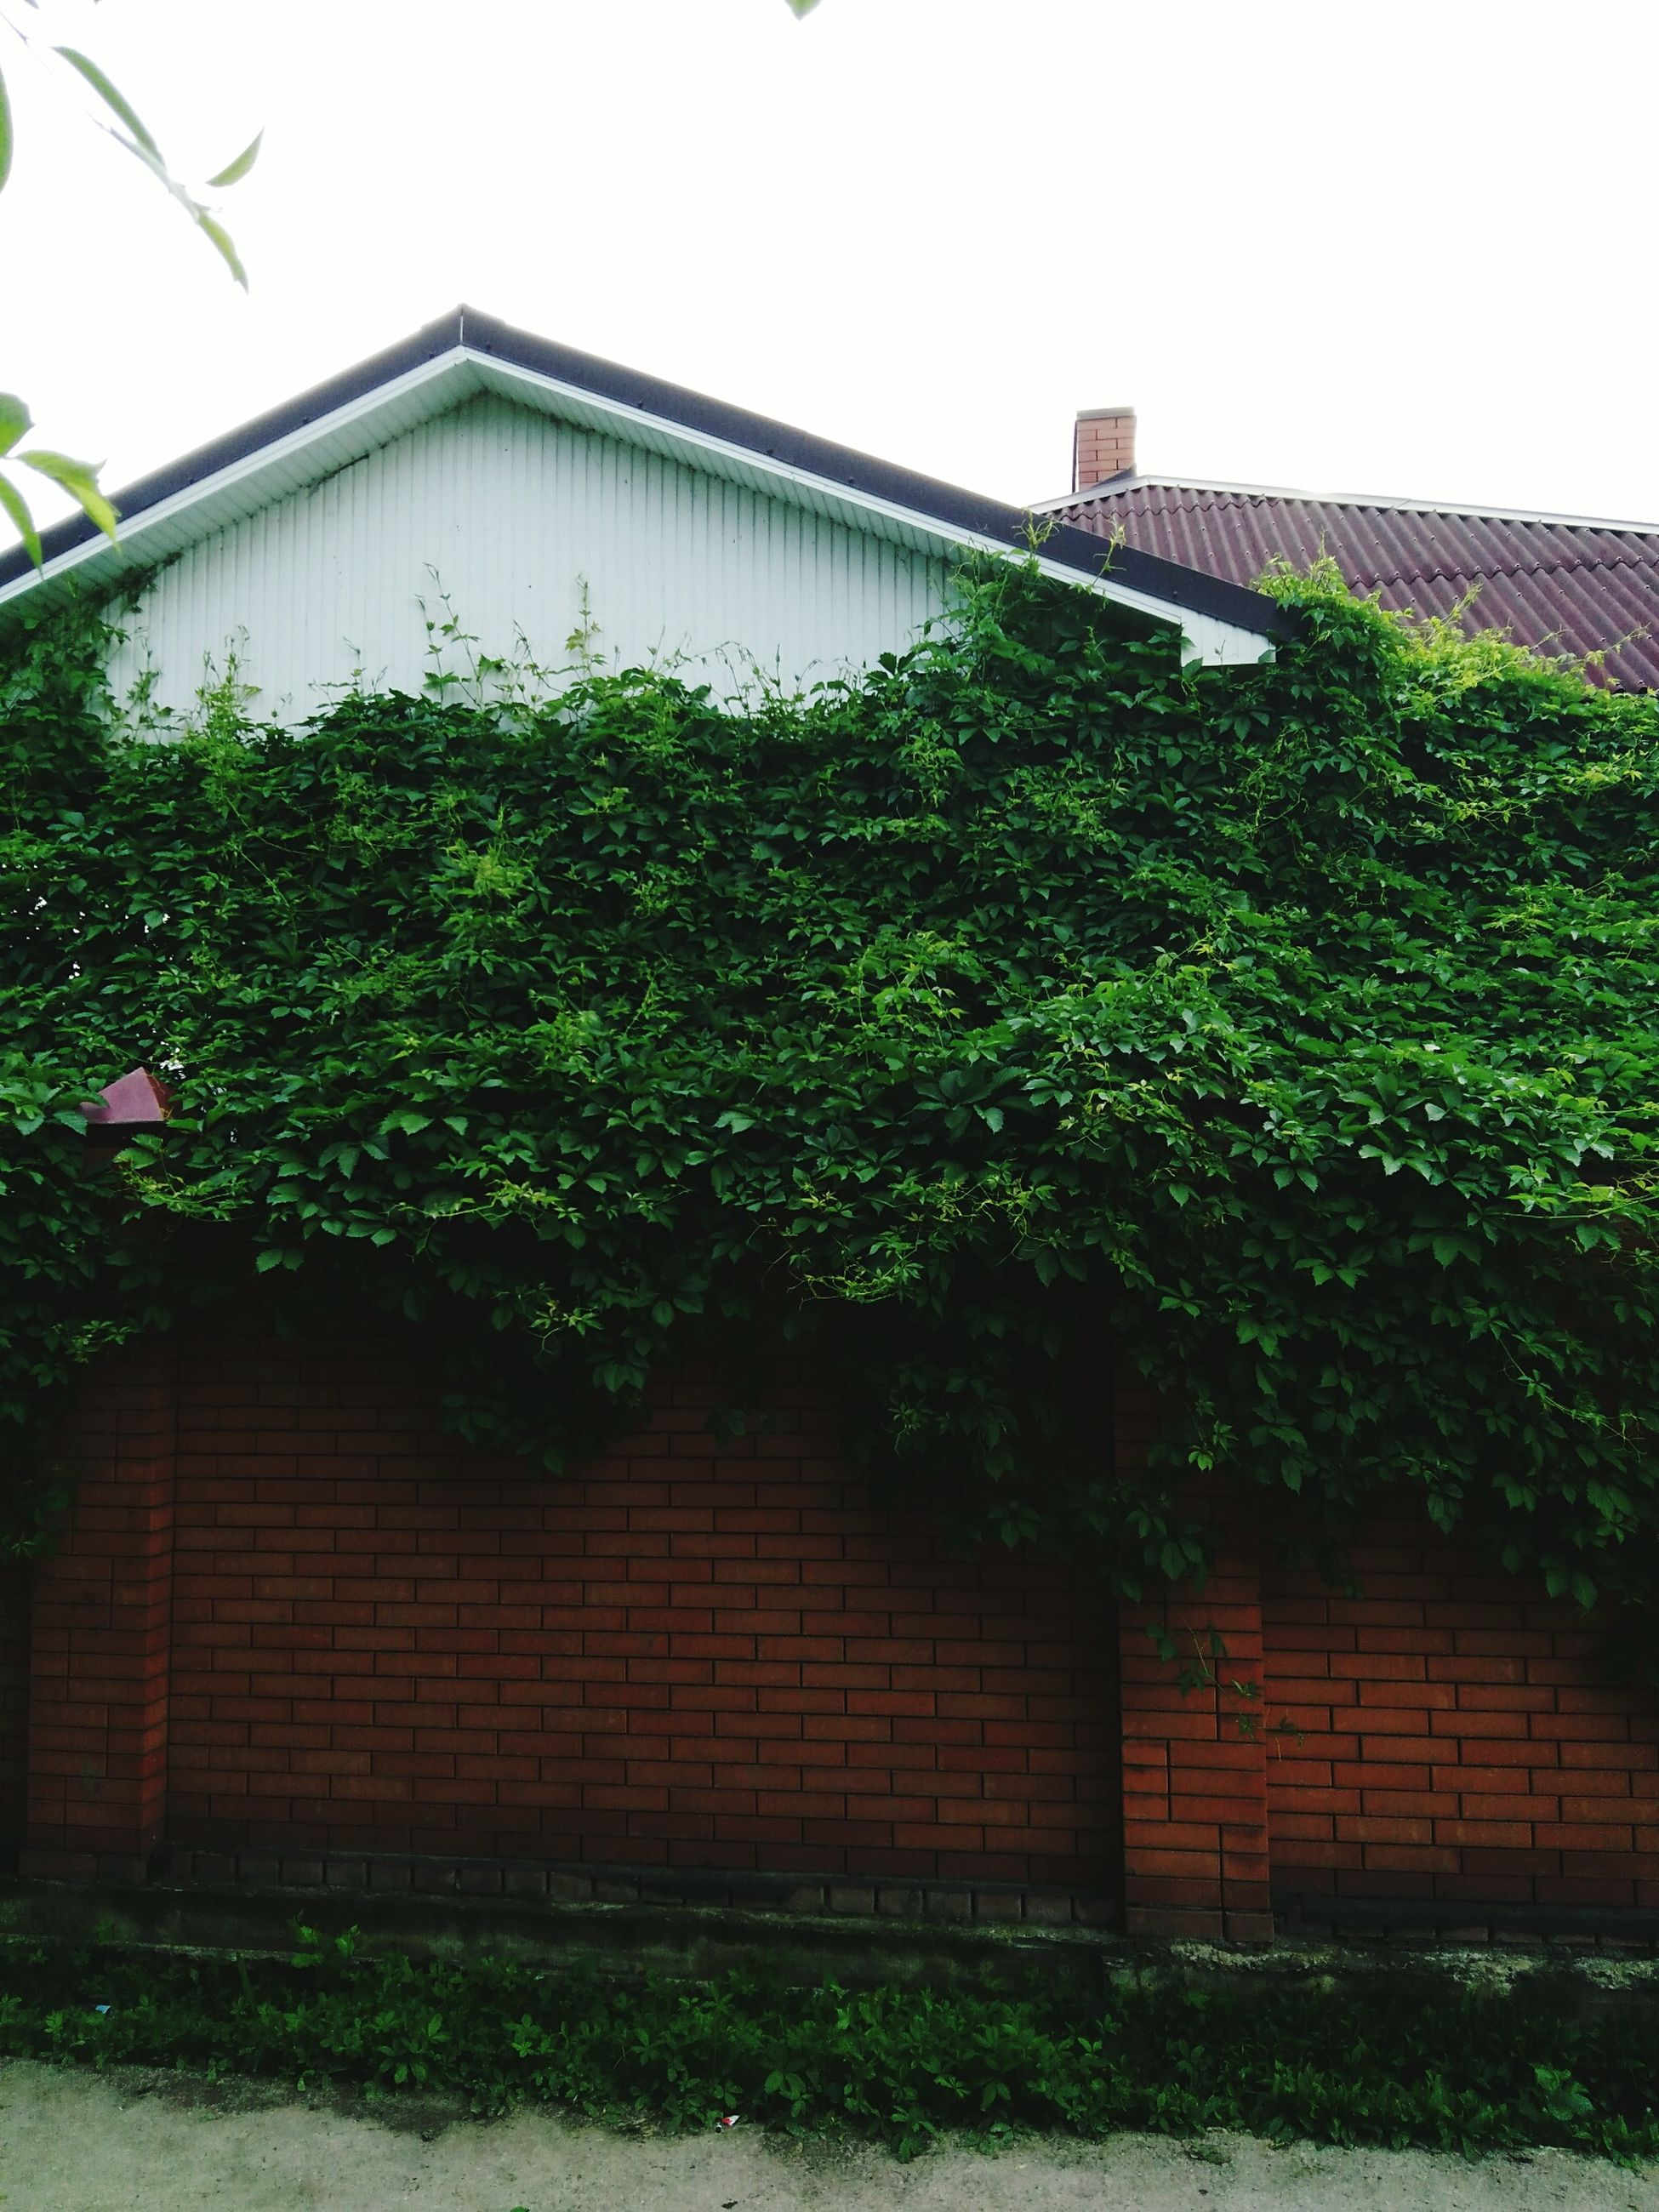 architecture, built structure, building exterior, clear sky, plant, brick wall, growth, house, green color, tree, wall - building feature, low angle view, window, stone wall, day, outdoors, ivy, residential structure, no people, wall